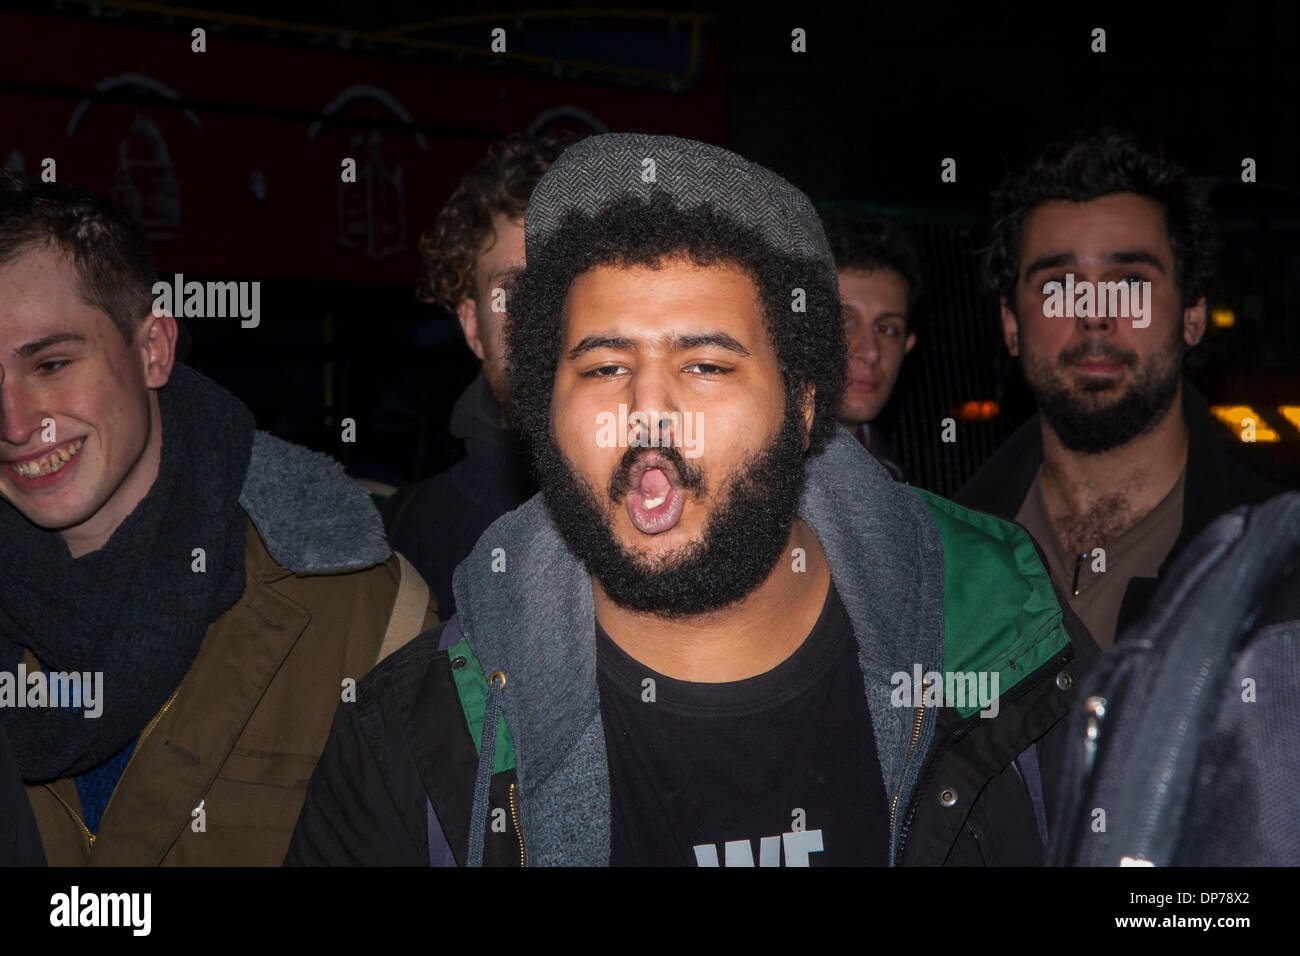 Royal Courts of Justice, London, January 8th 2014. A, angry supporter of Mark Duggan's family shouts 'No - Stock Image